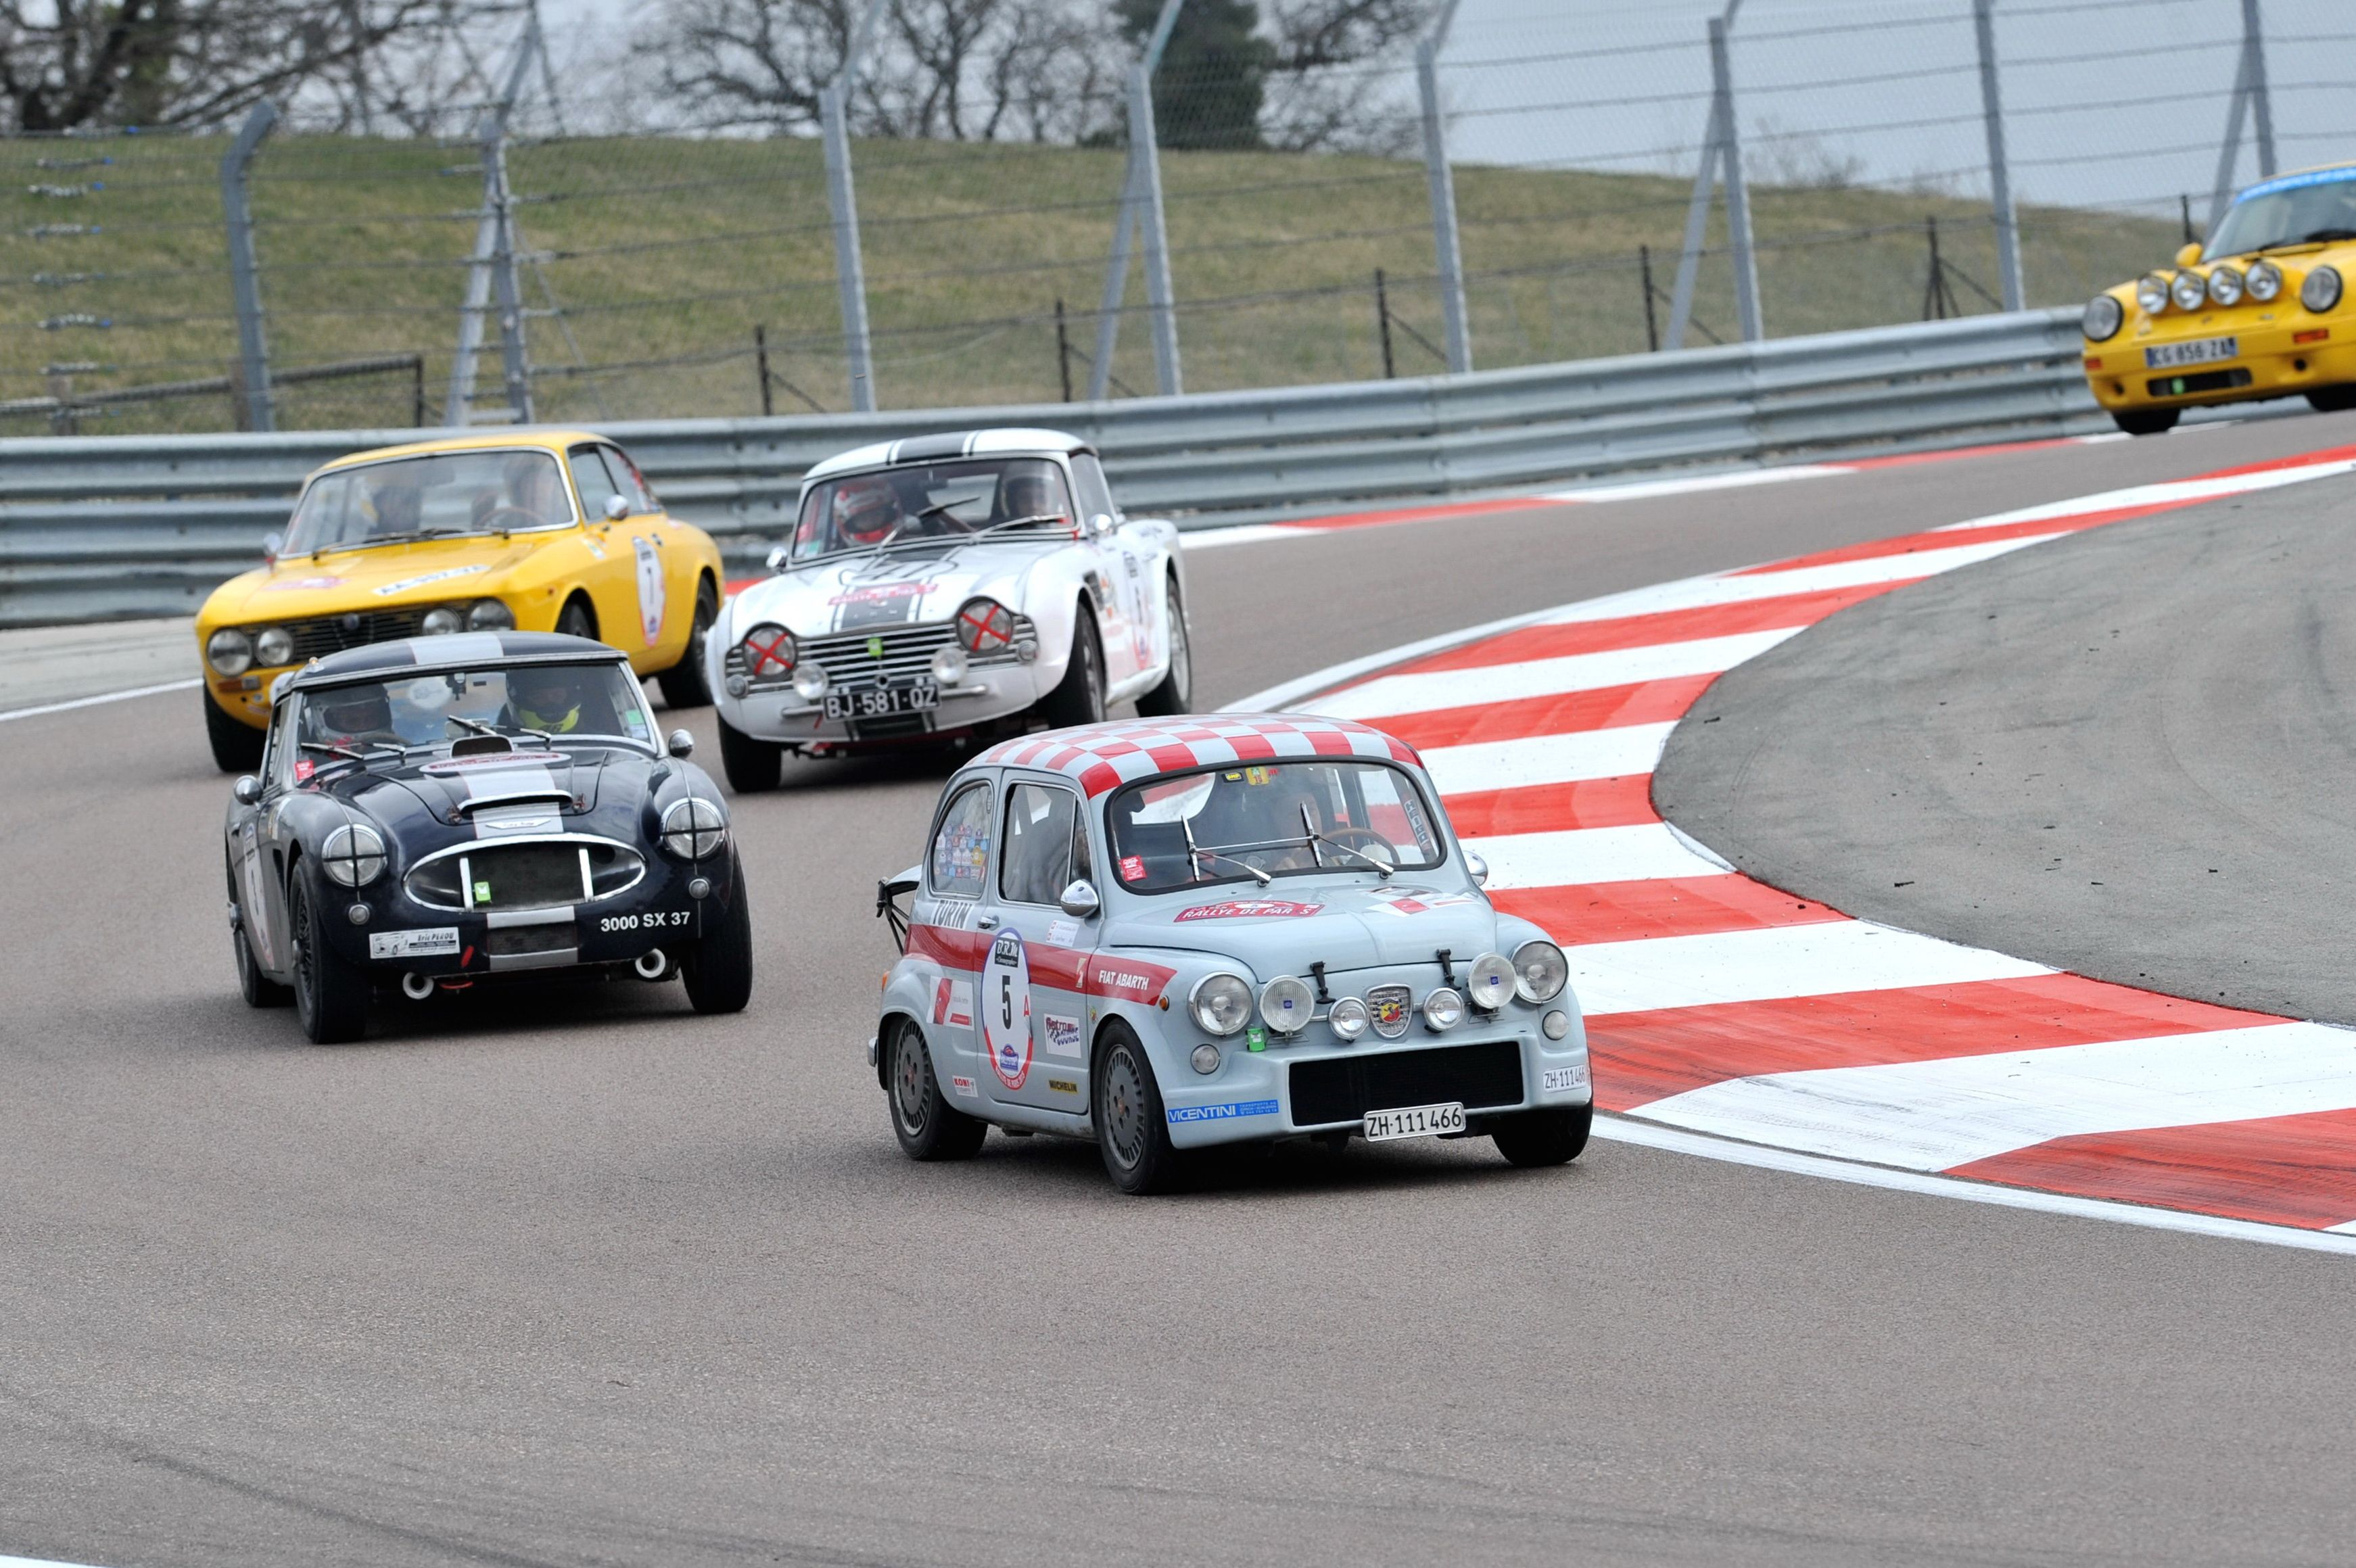 Circuit Dijon Prenois, March 2015. Finding our way in the traffic to win the Rallye de Paris.